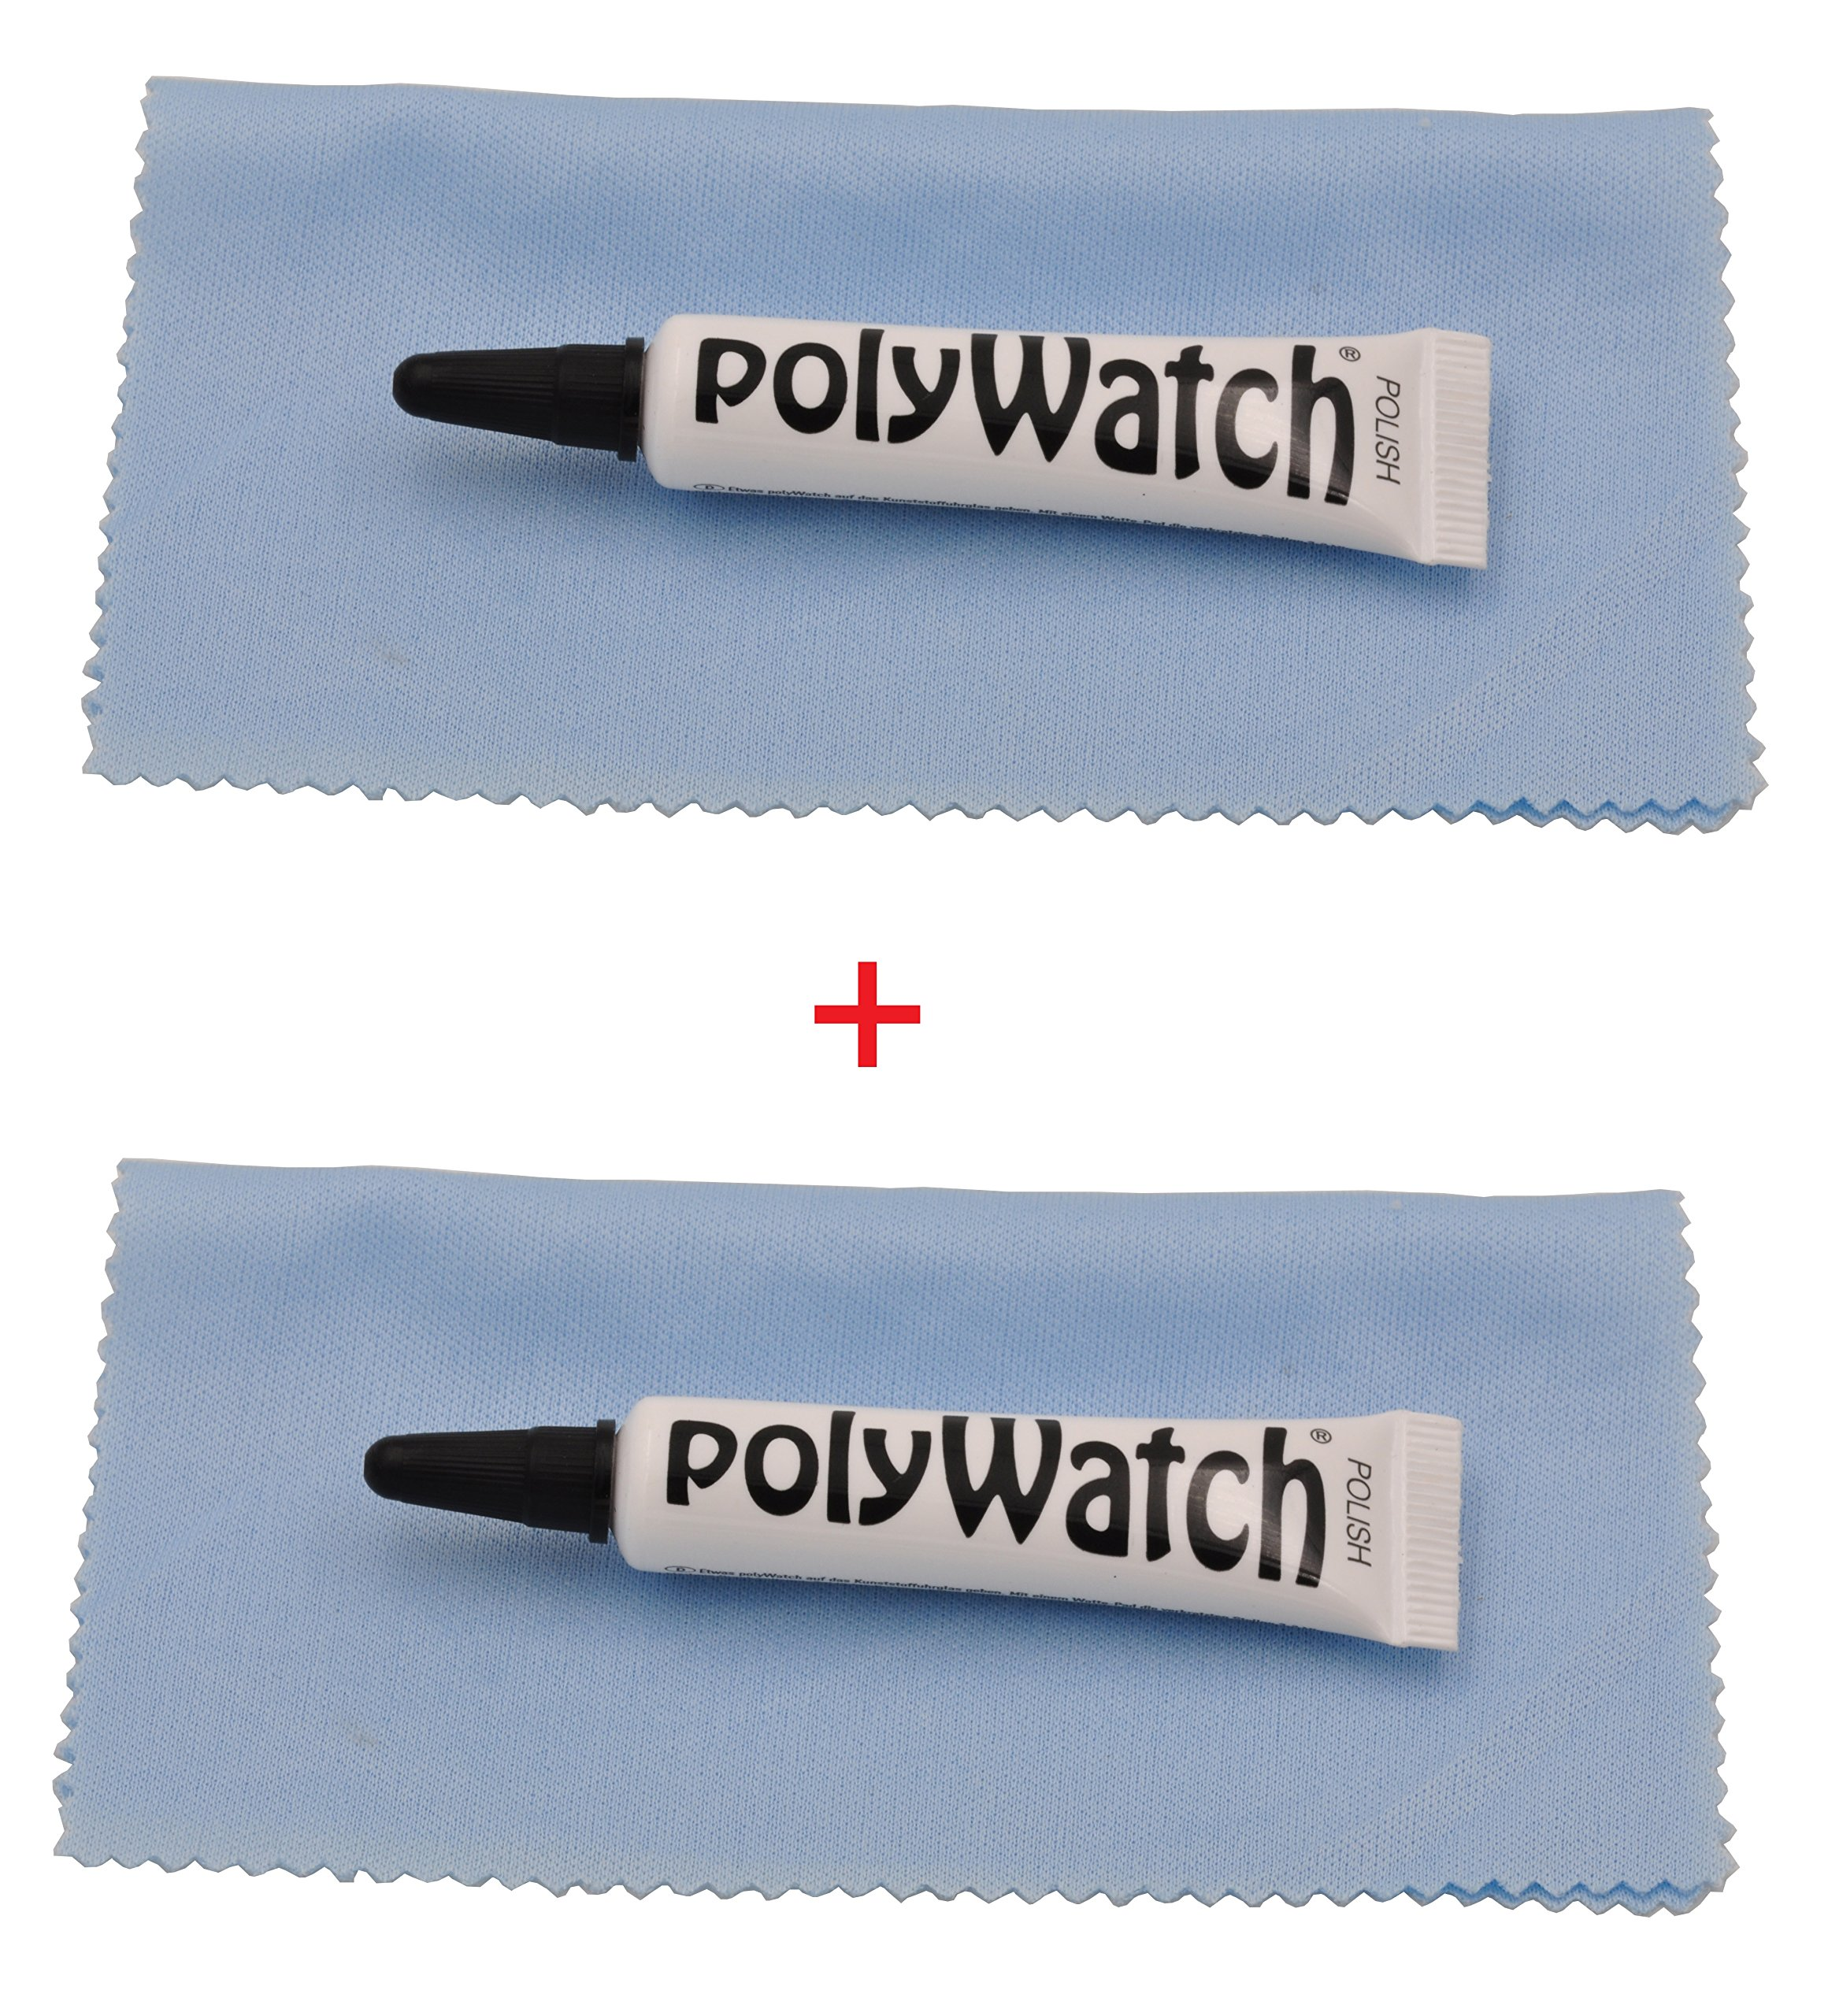 Polywatch Poly Watch Plastic Crystal Glass Polish & Scratch Remover Repair Tool(2 Units) with 2 pieces of cloth